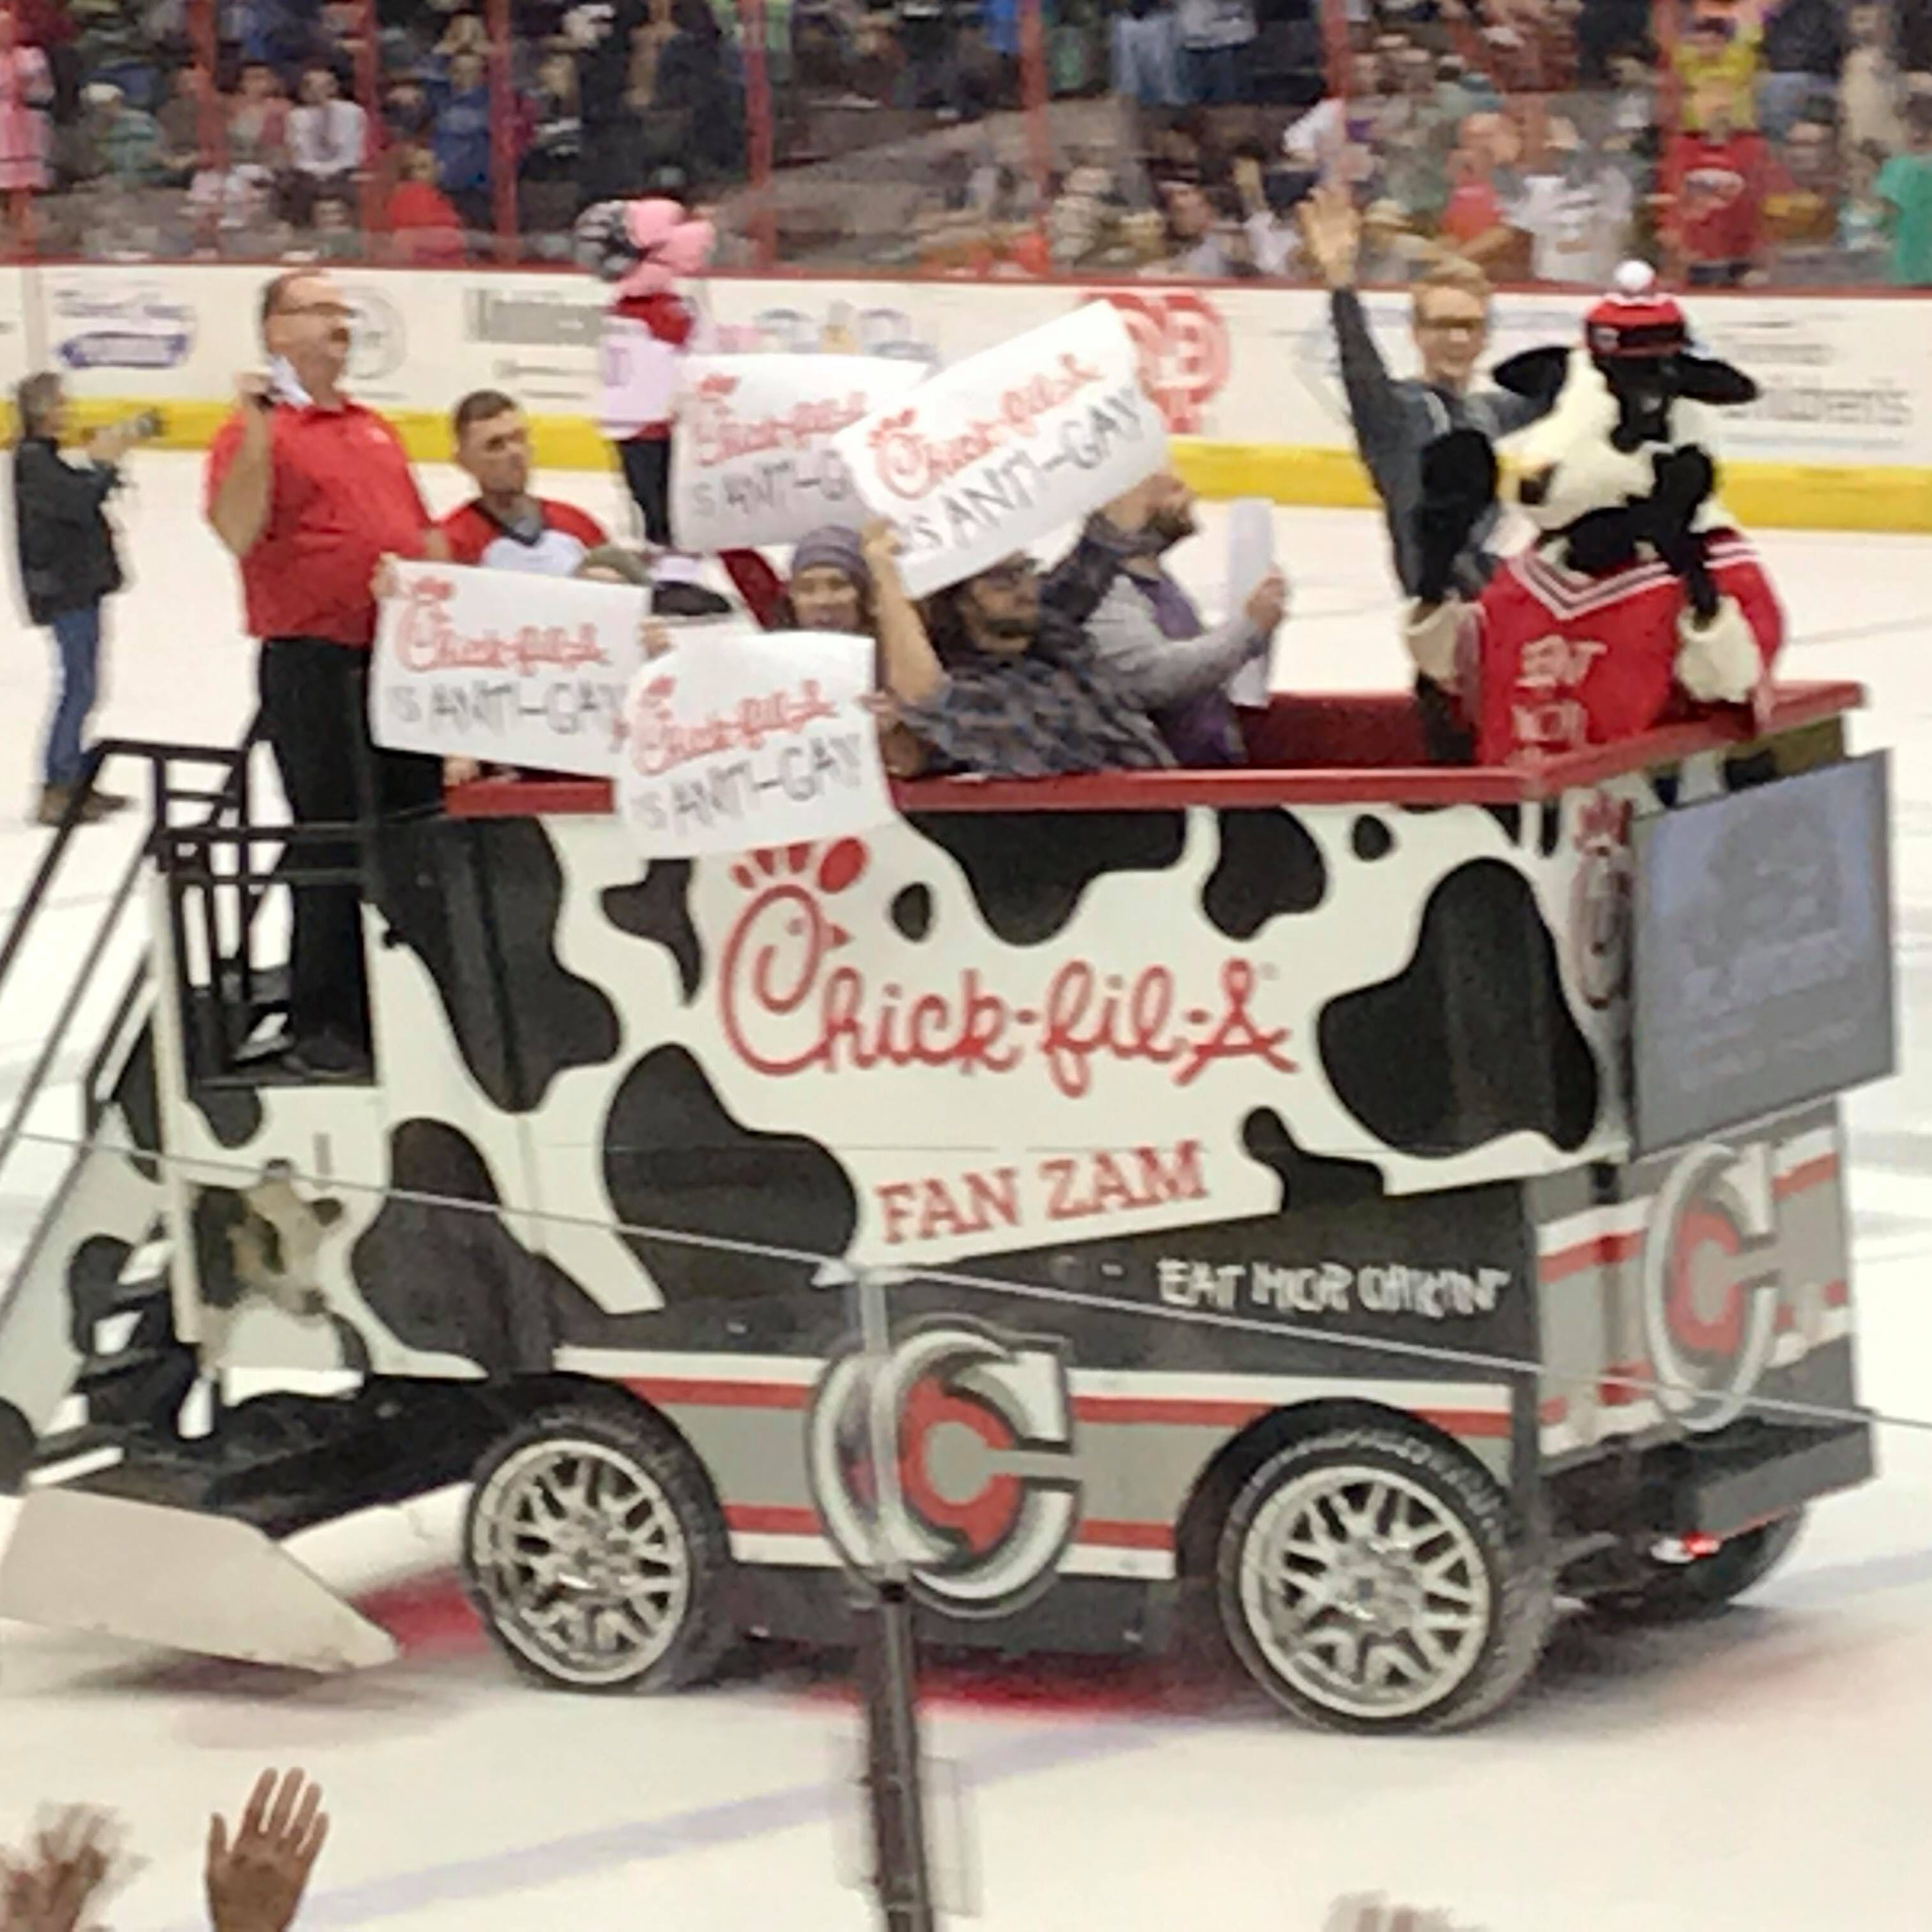 """Chick-fil-A is ANTI-GAY"" protesters ride Cincinnati Cyclones Zamboni"